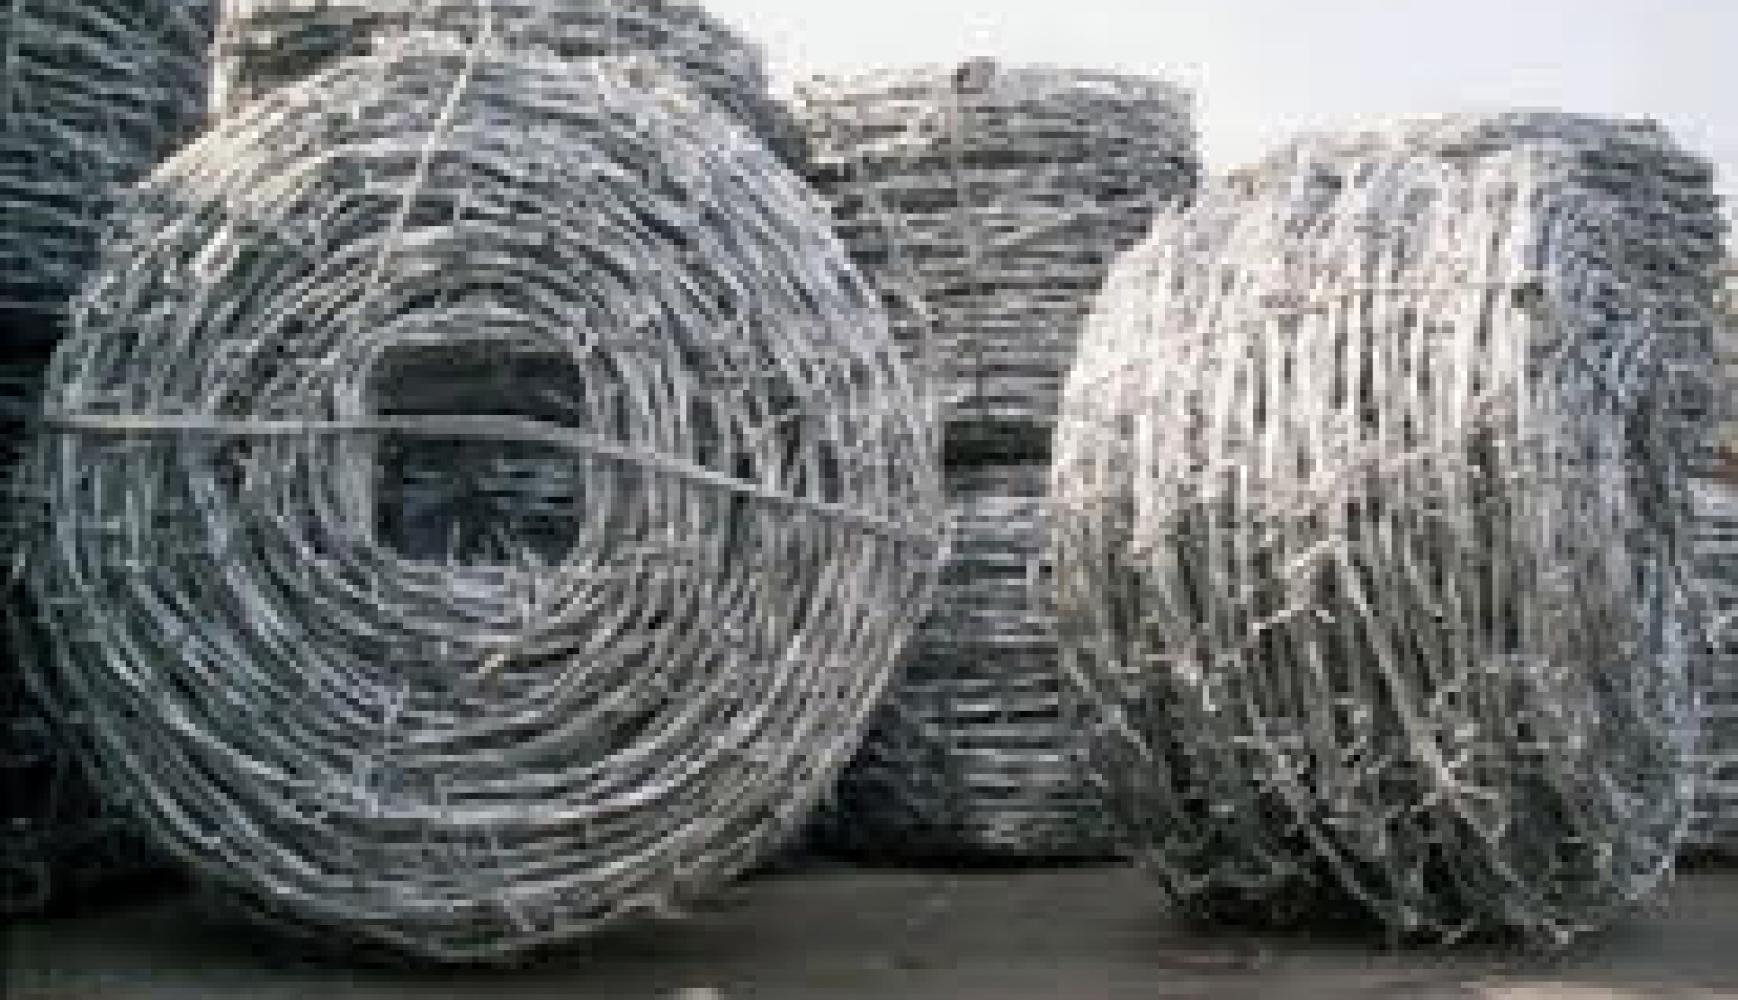 Barbed wire supplier in DUBAI - Middle East, UAE | DUBI CHEM